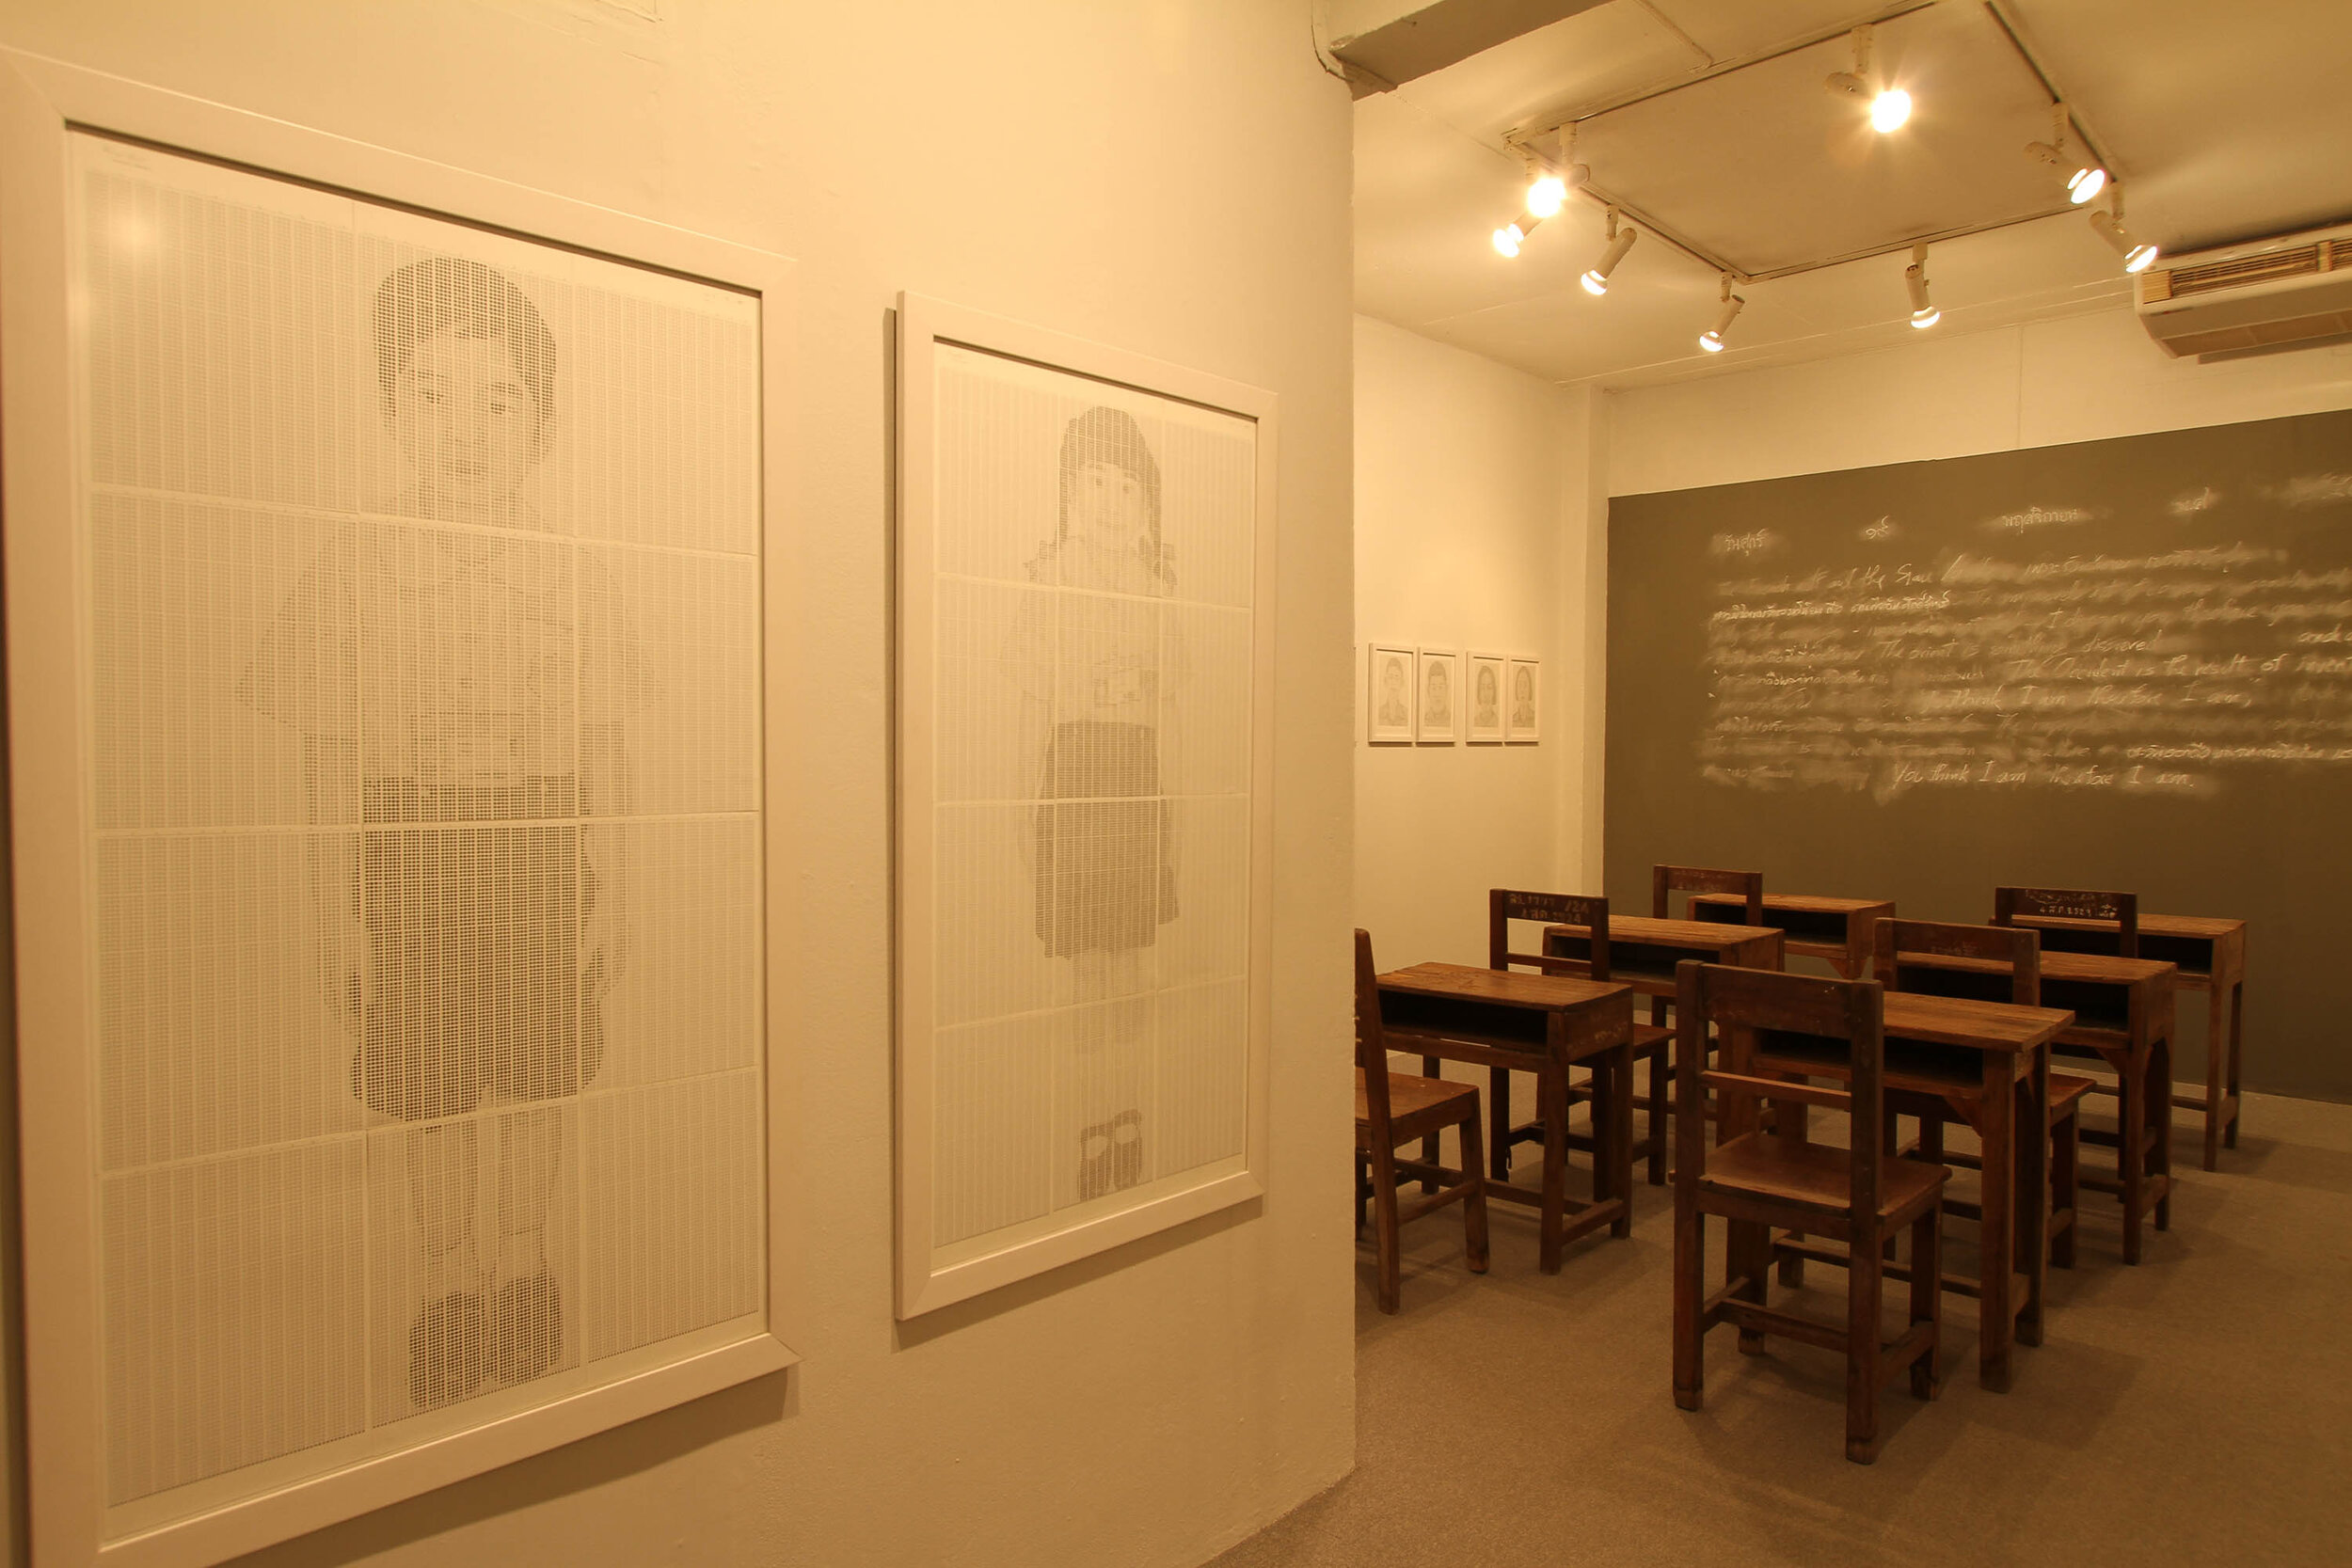 'The Classroom', 2010, exhibition installation view. Photograph by Aroon Peampoonsopon.